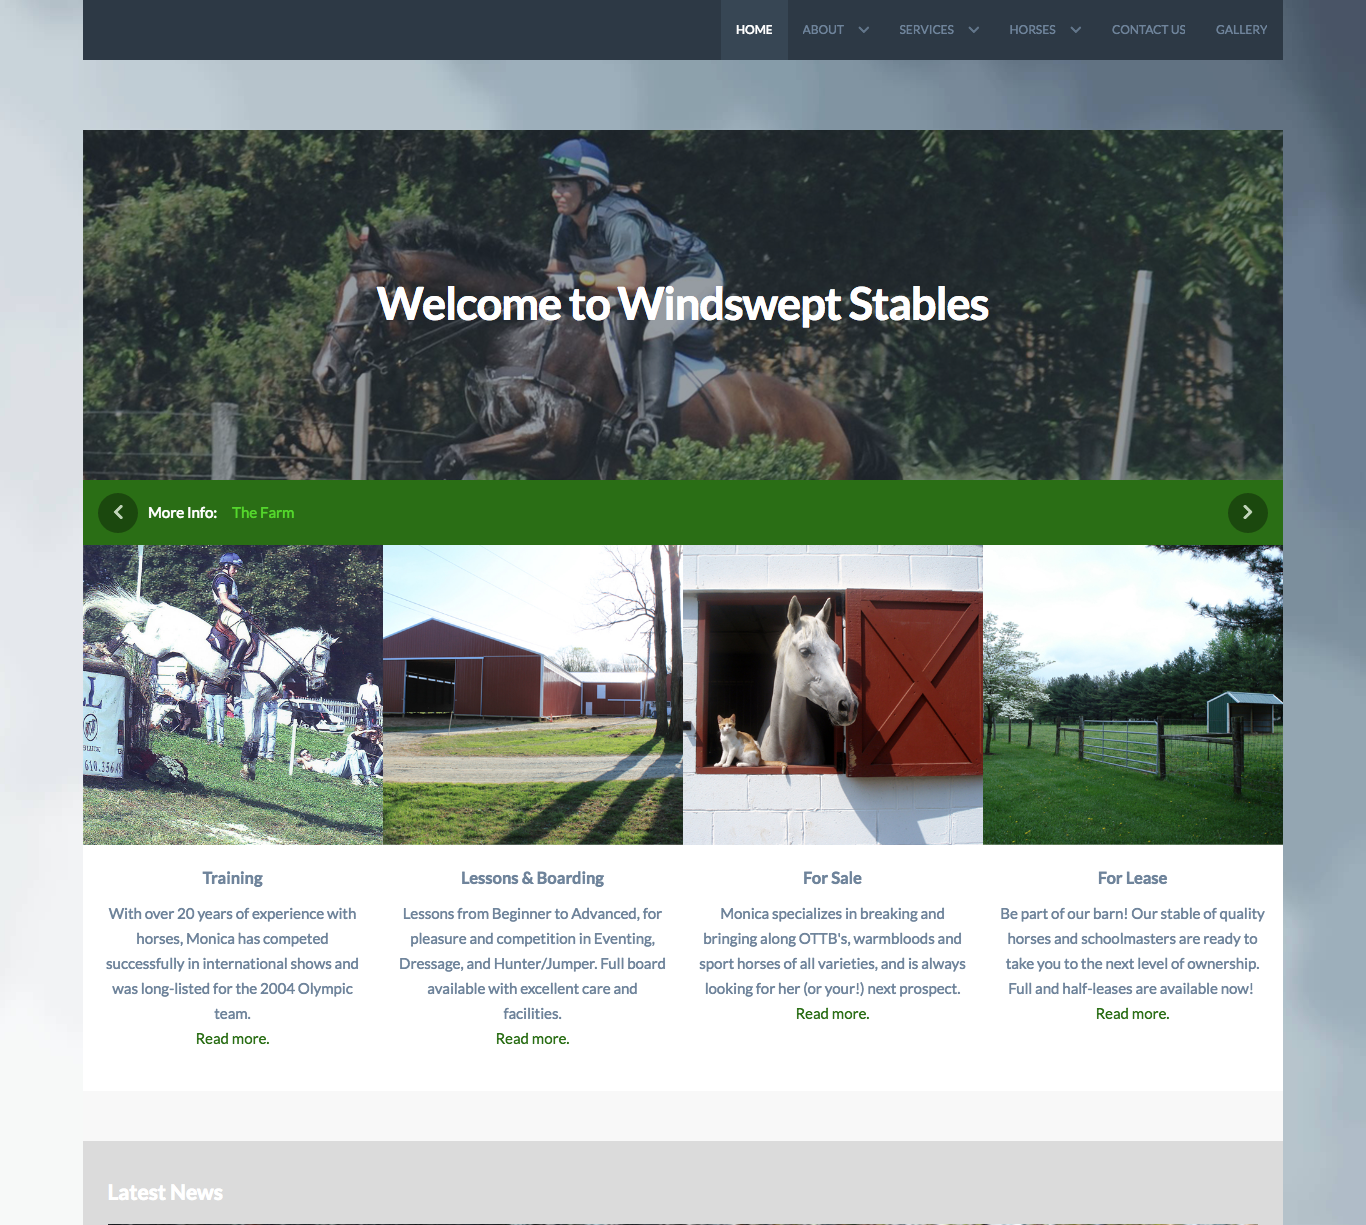 Windswept Stables